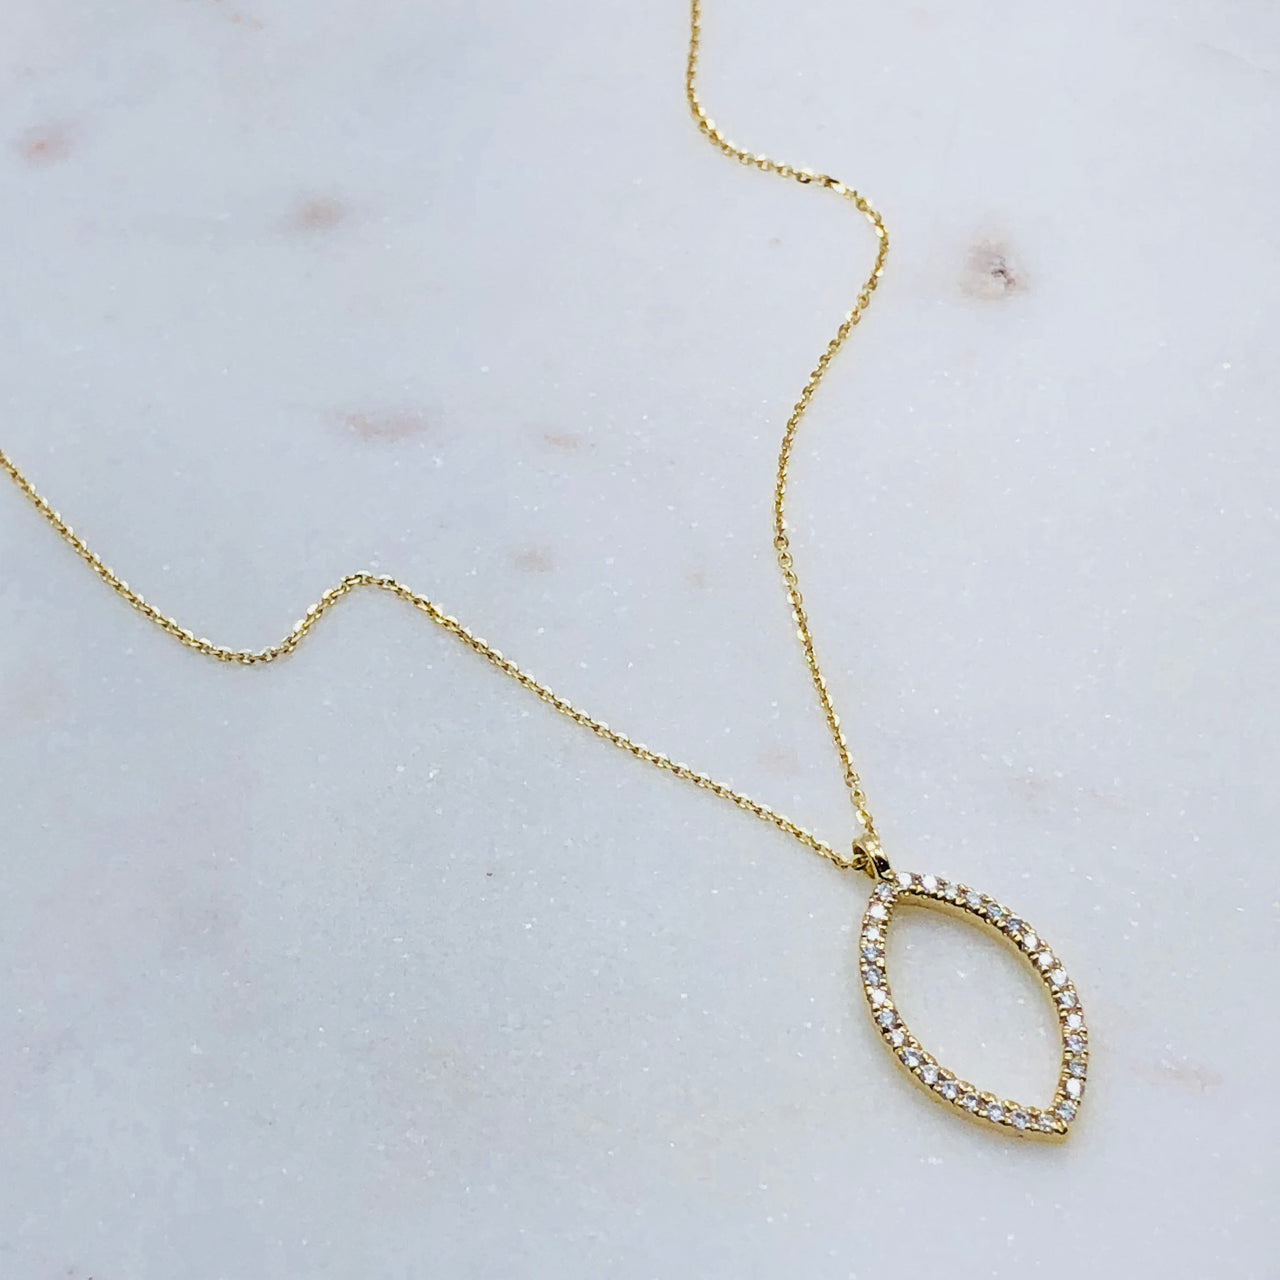 14K Yellow Gold Marquise Diamond Necklace.